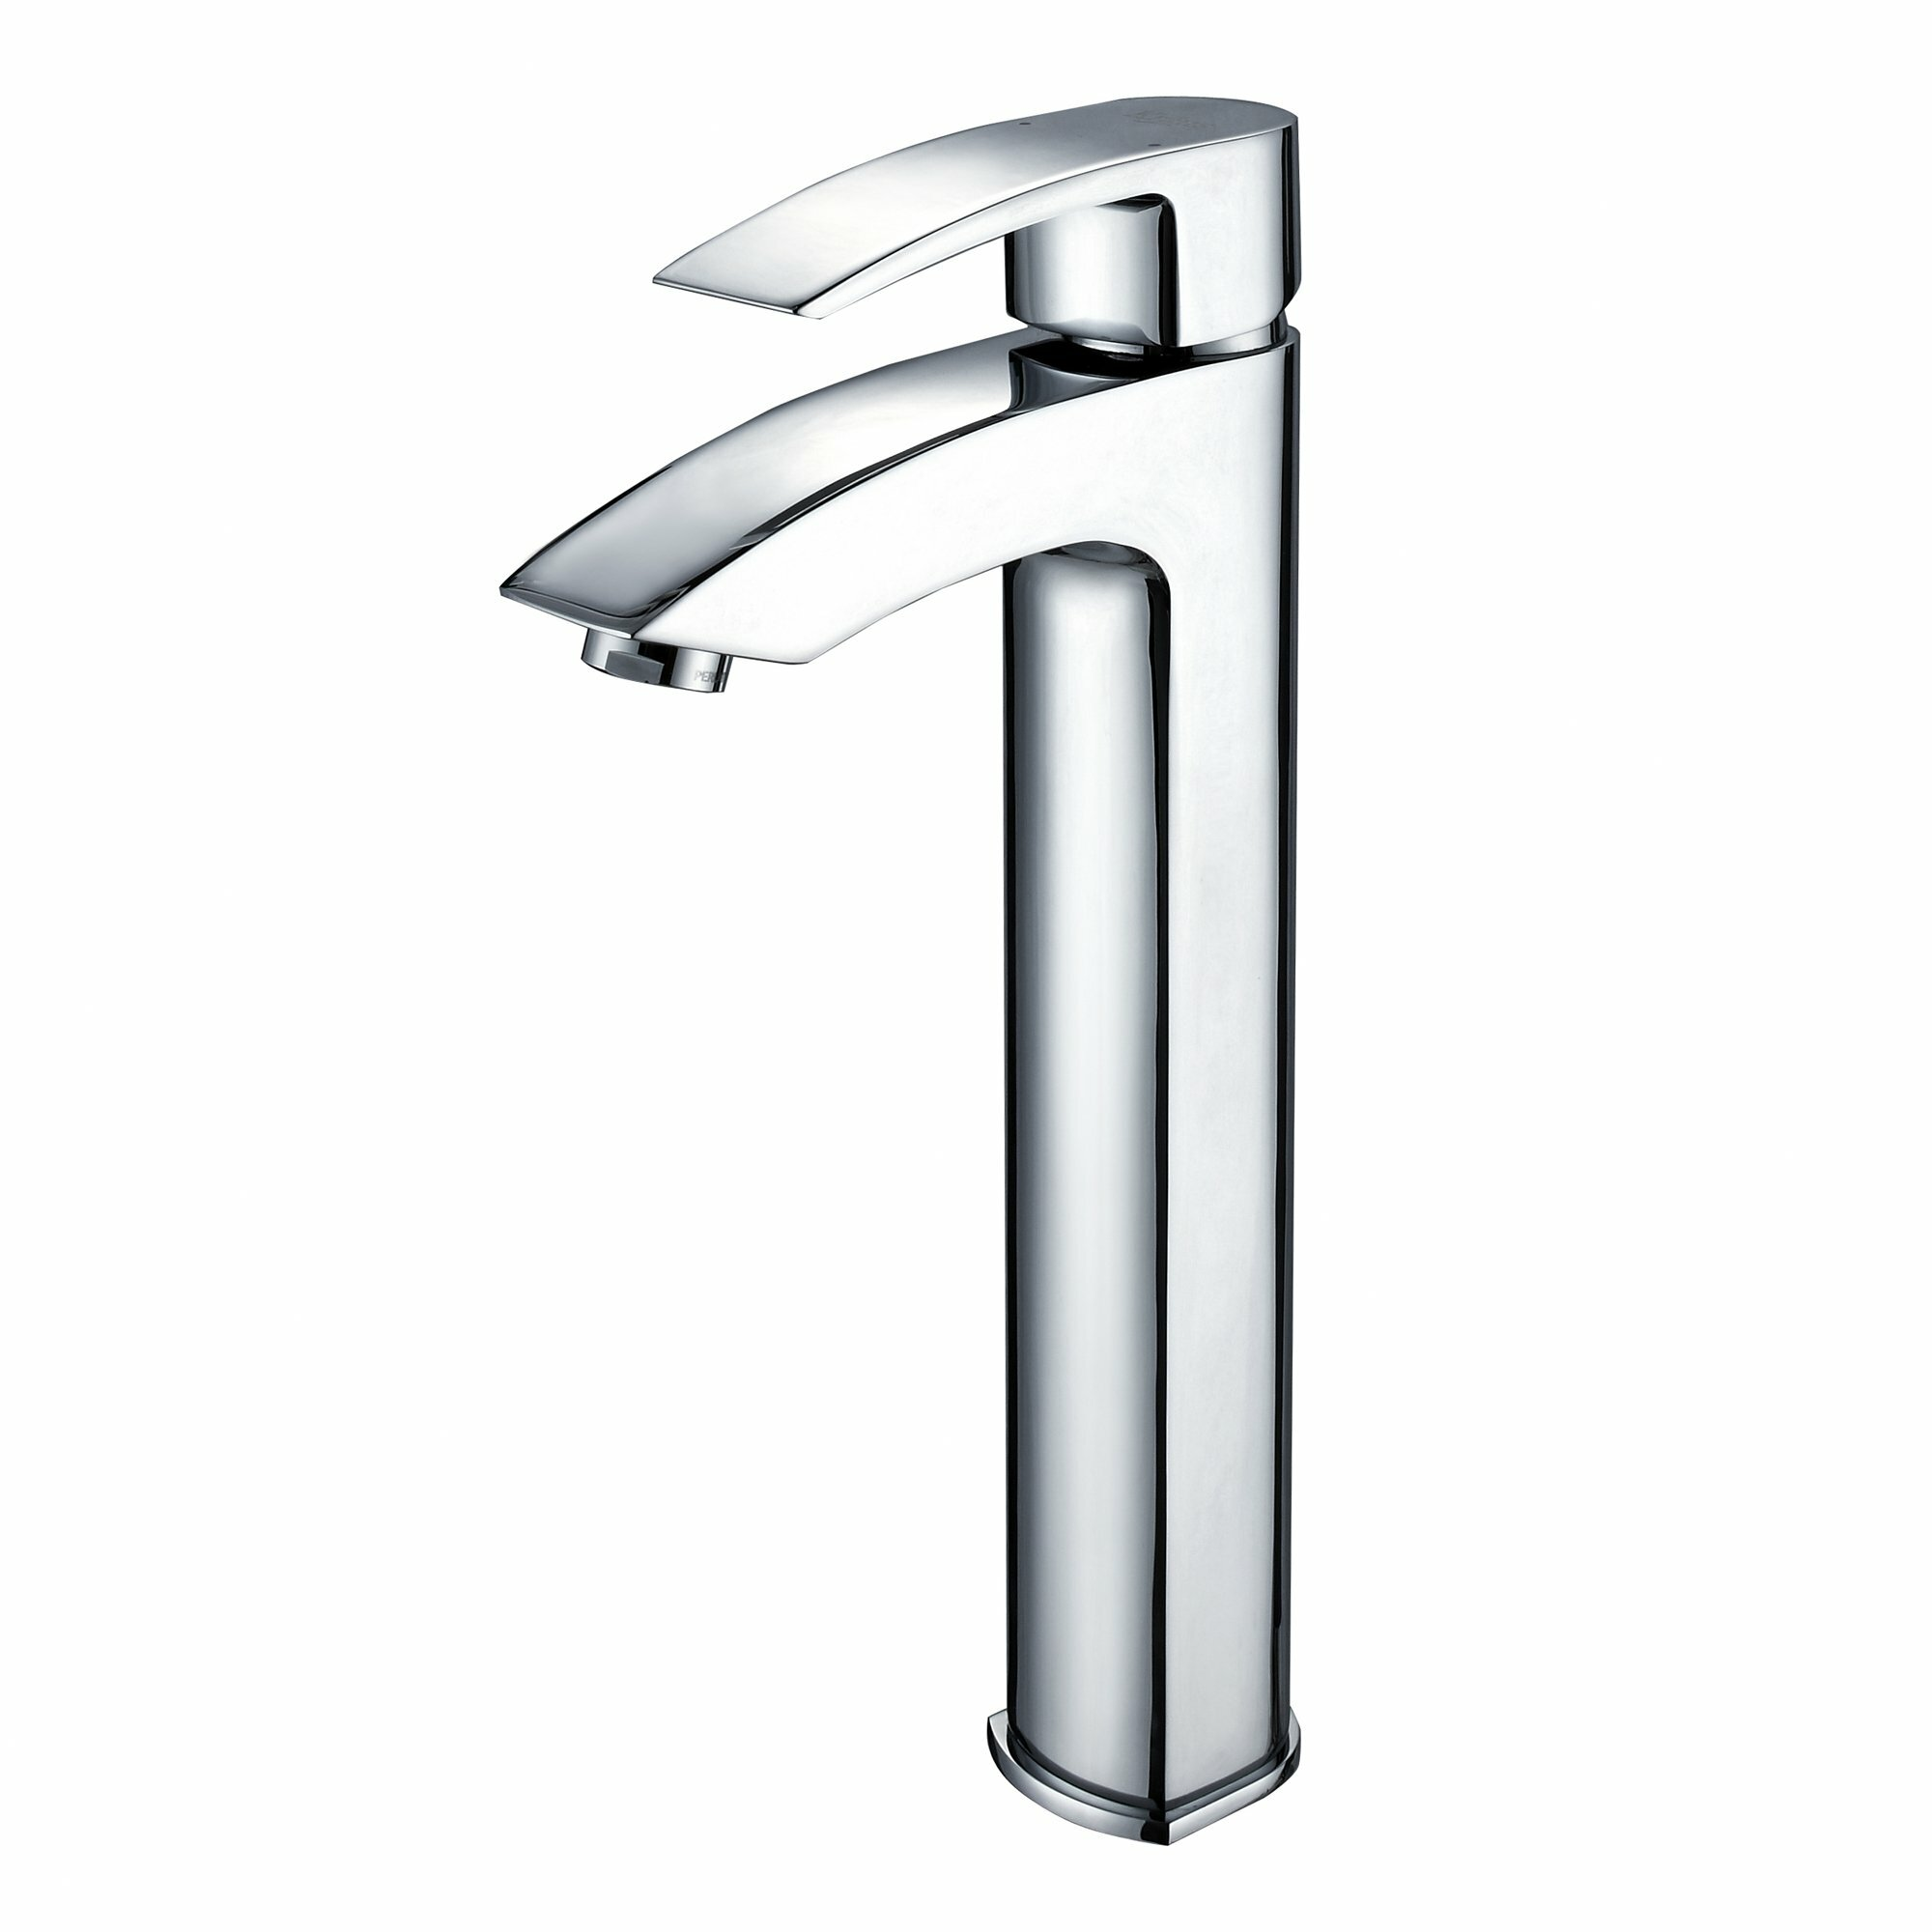 Kraus Crystal Clear Glass Vessel Sink and Visio Faucet & Reviews ...